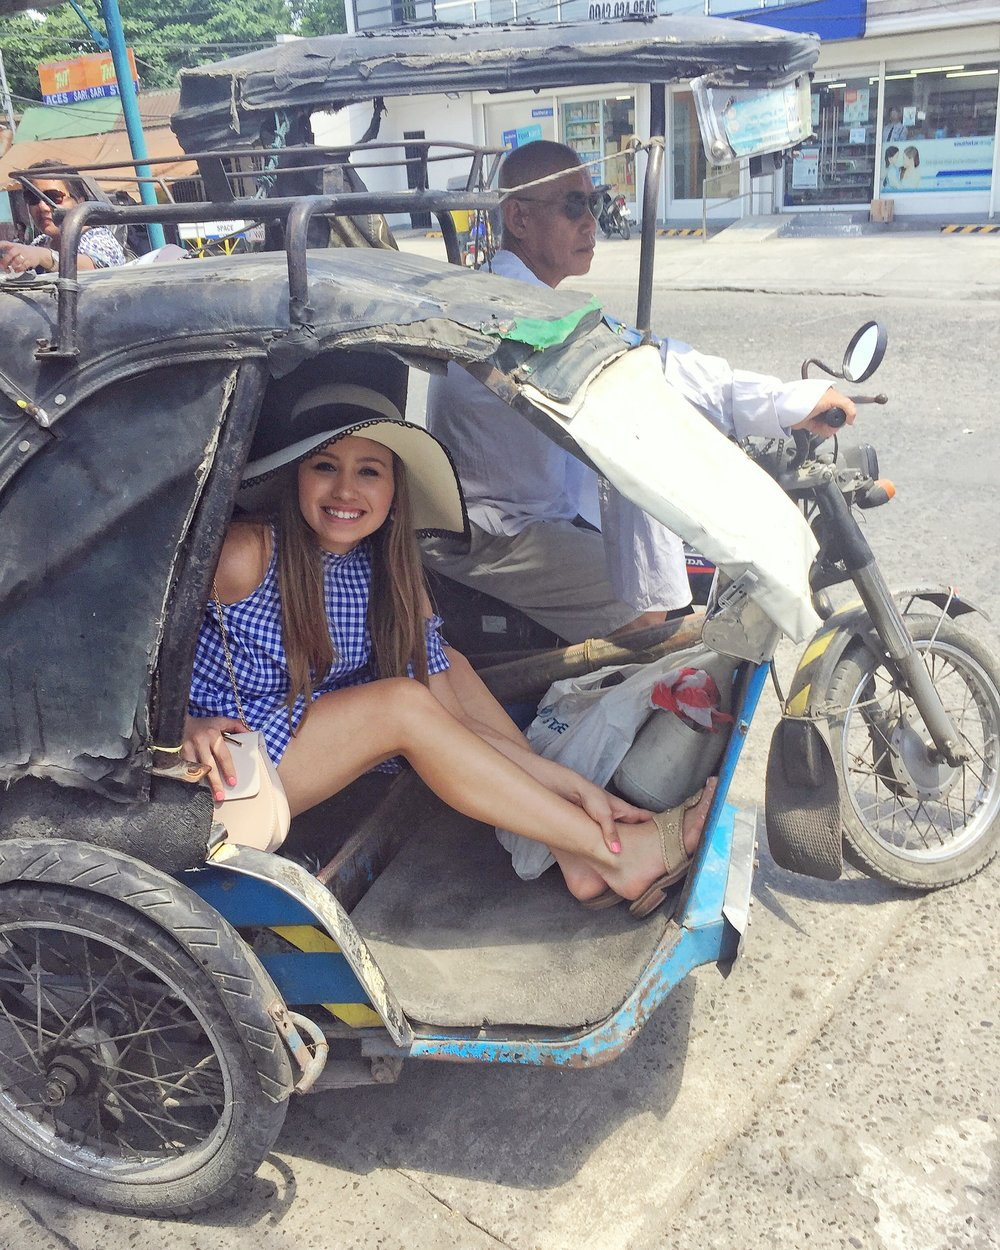 Riding a trike! Along with Jeepneys, these are the primary form of transportation!